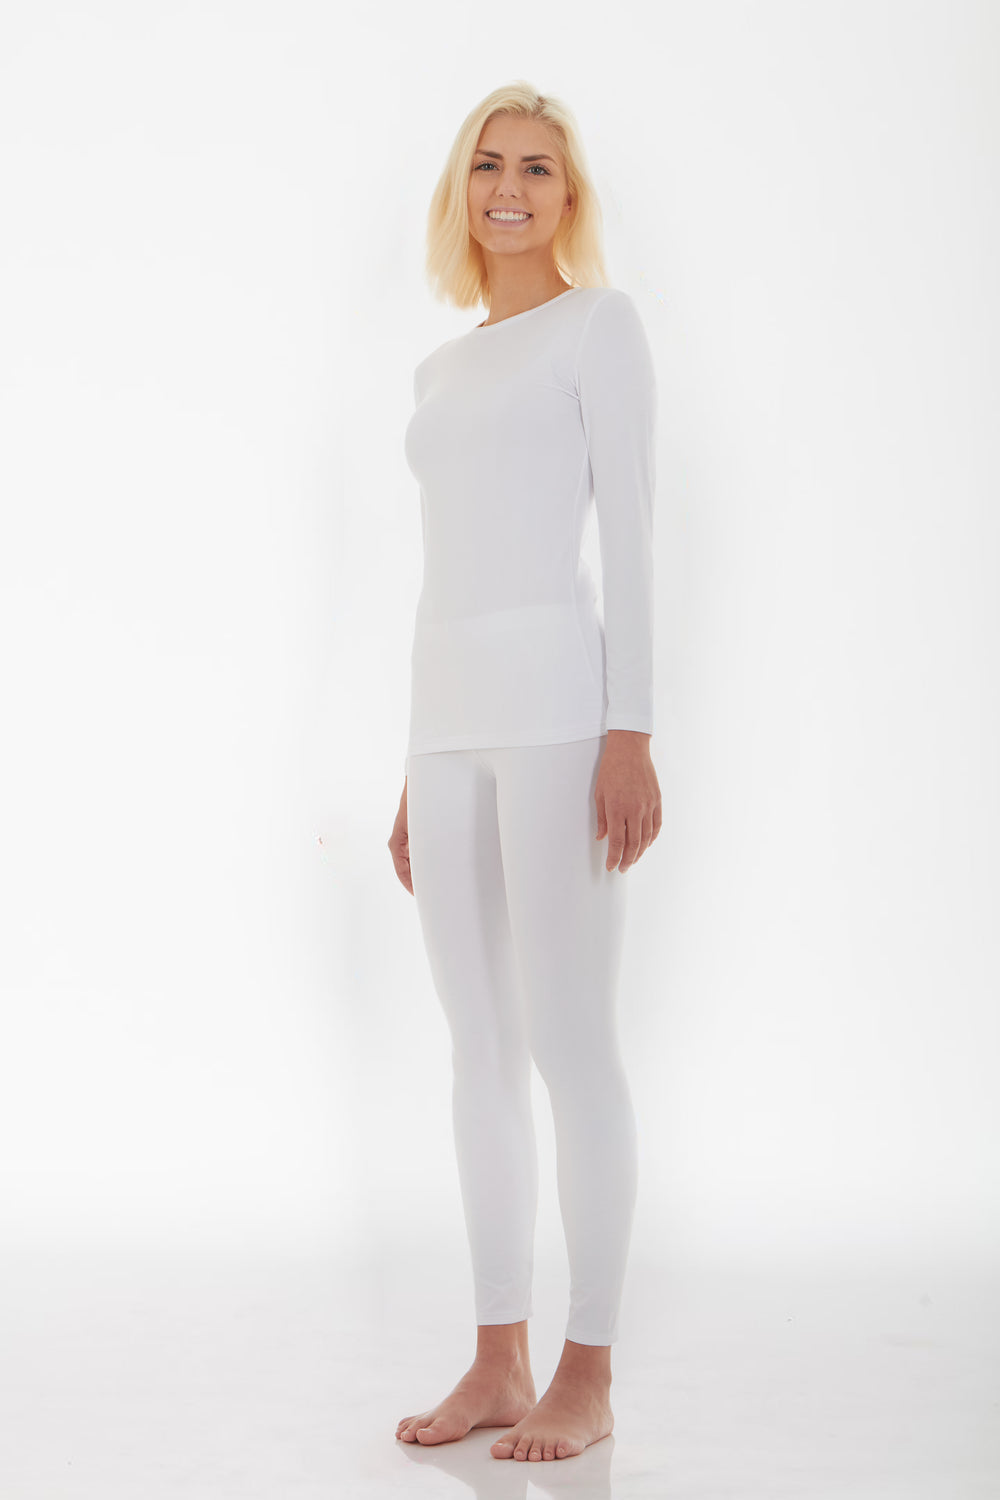 Women's White Thermal Underwear Set